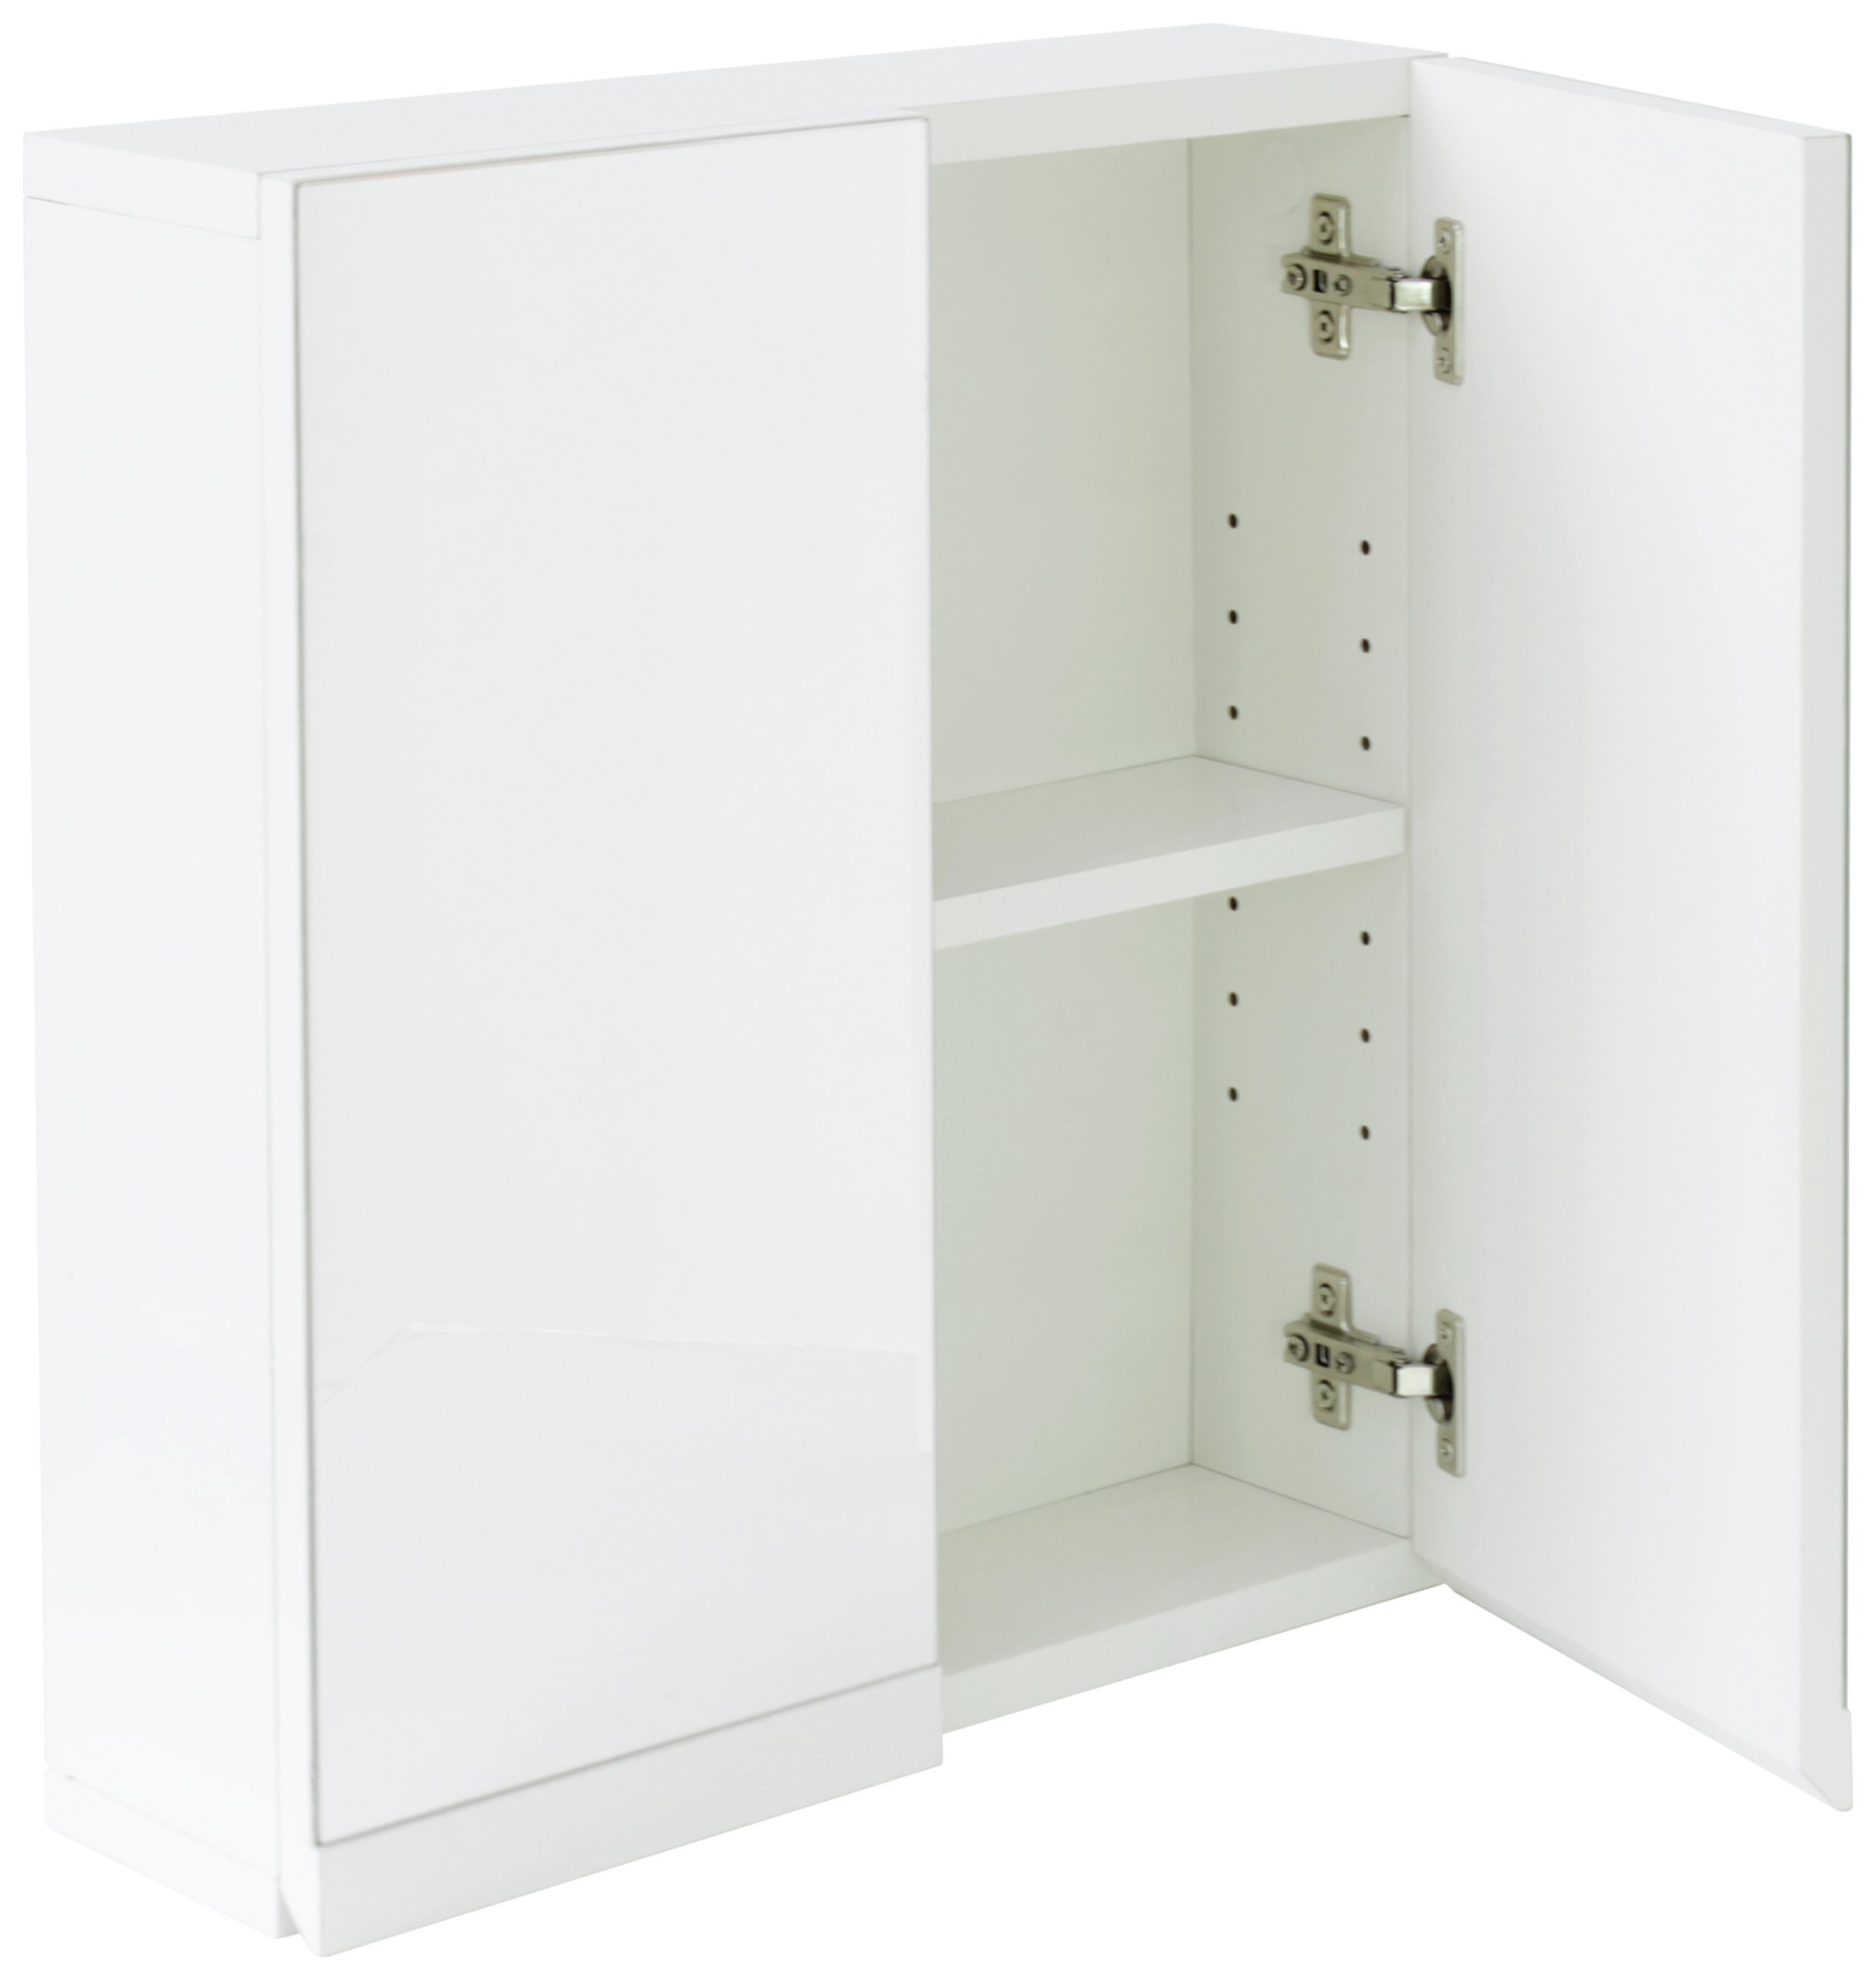 white high gloss bathroom wall cabinets white gloss bathroom wall cabinets uk cabinets matttroy 25890